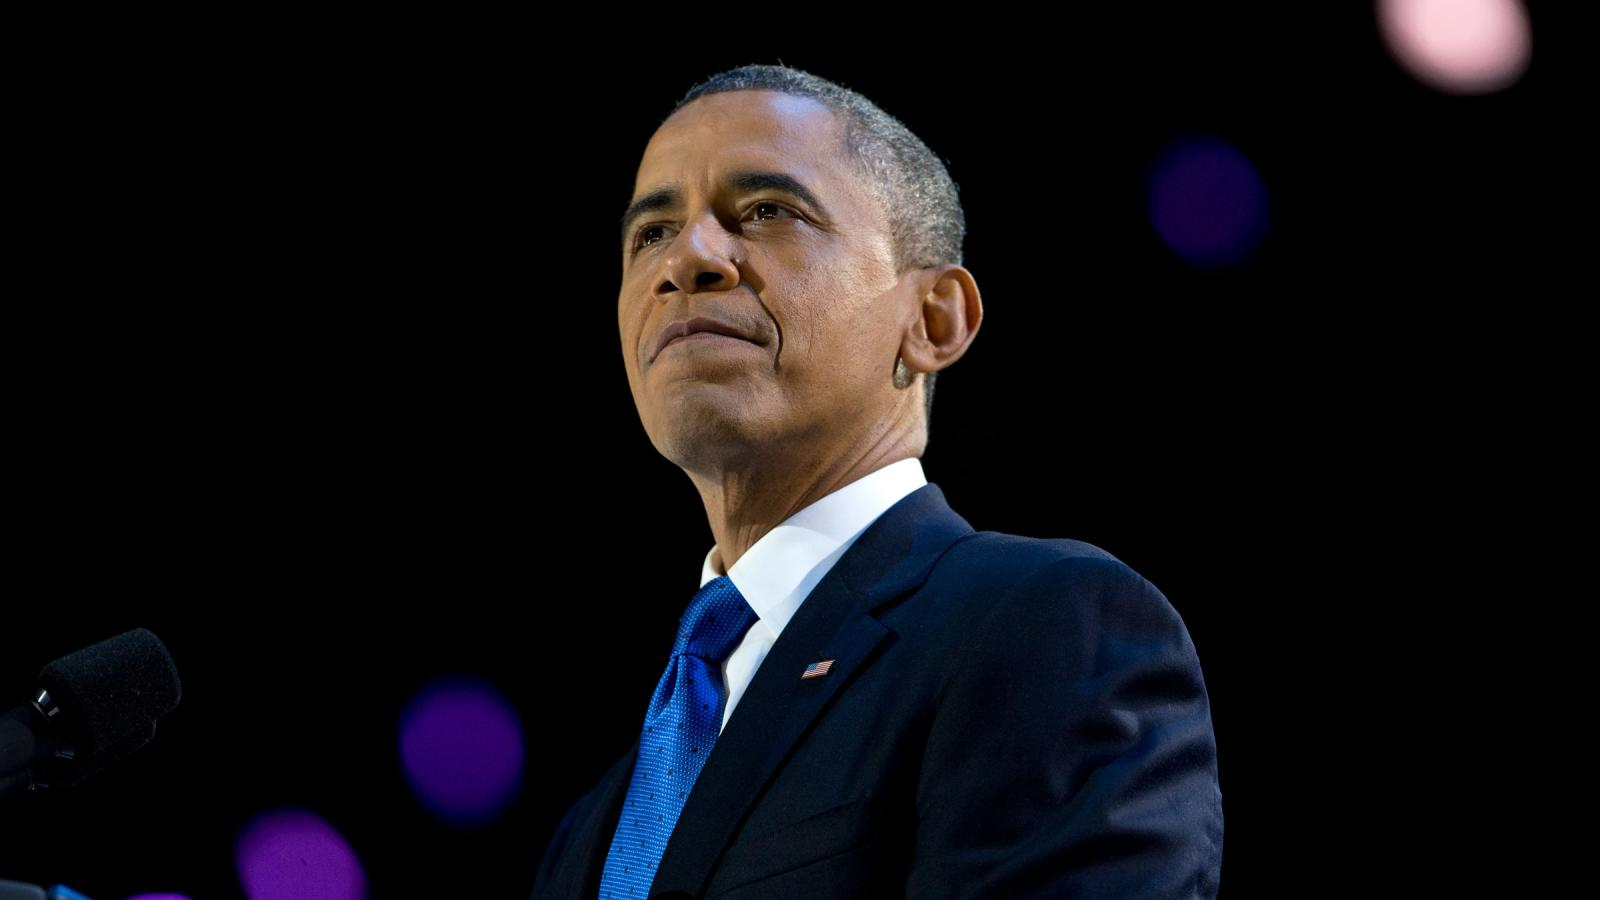 Barack Obama addressed the racism he's faced as US president, in ...